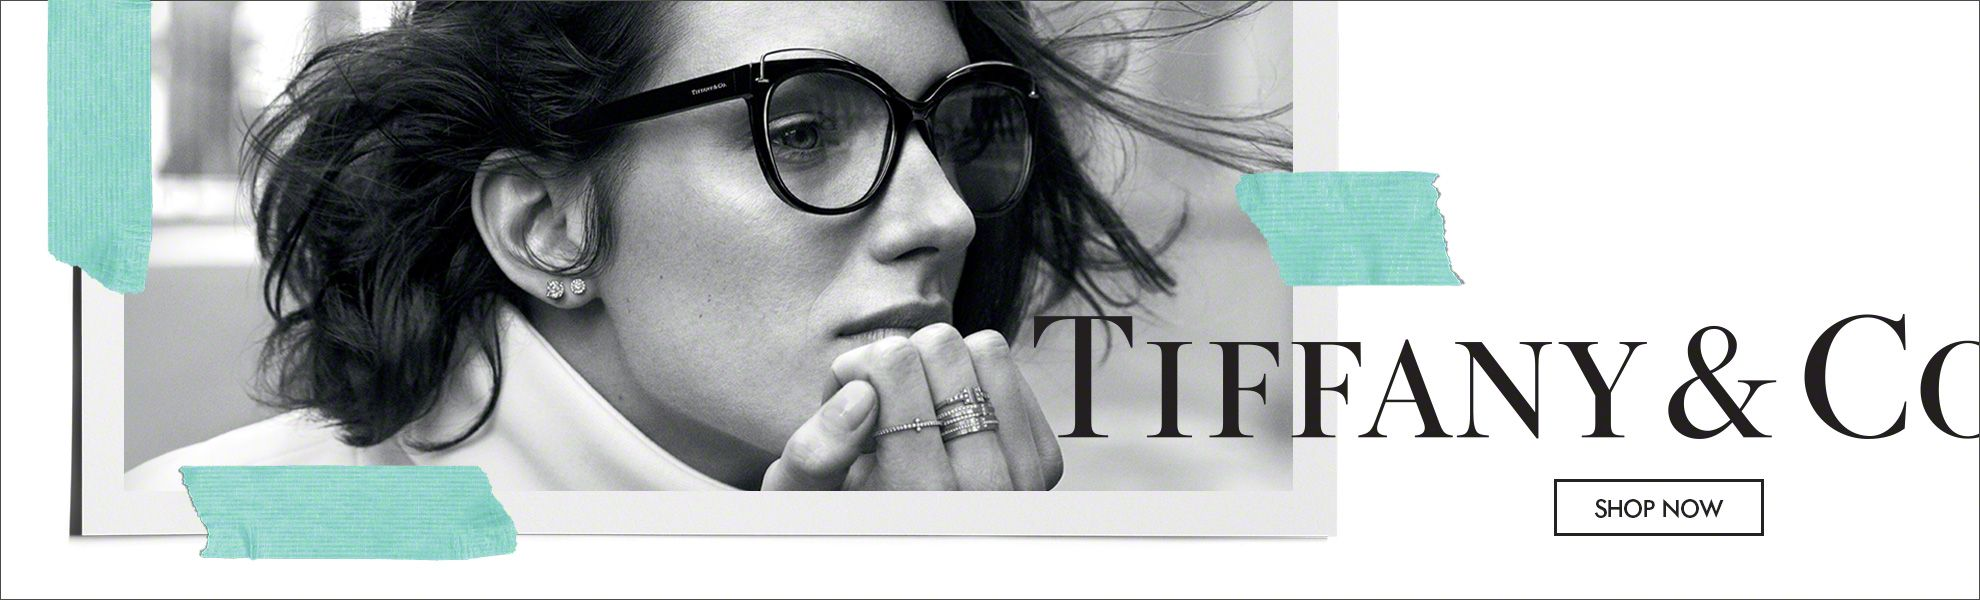 New tiffany T eyewear designs and much more